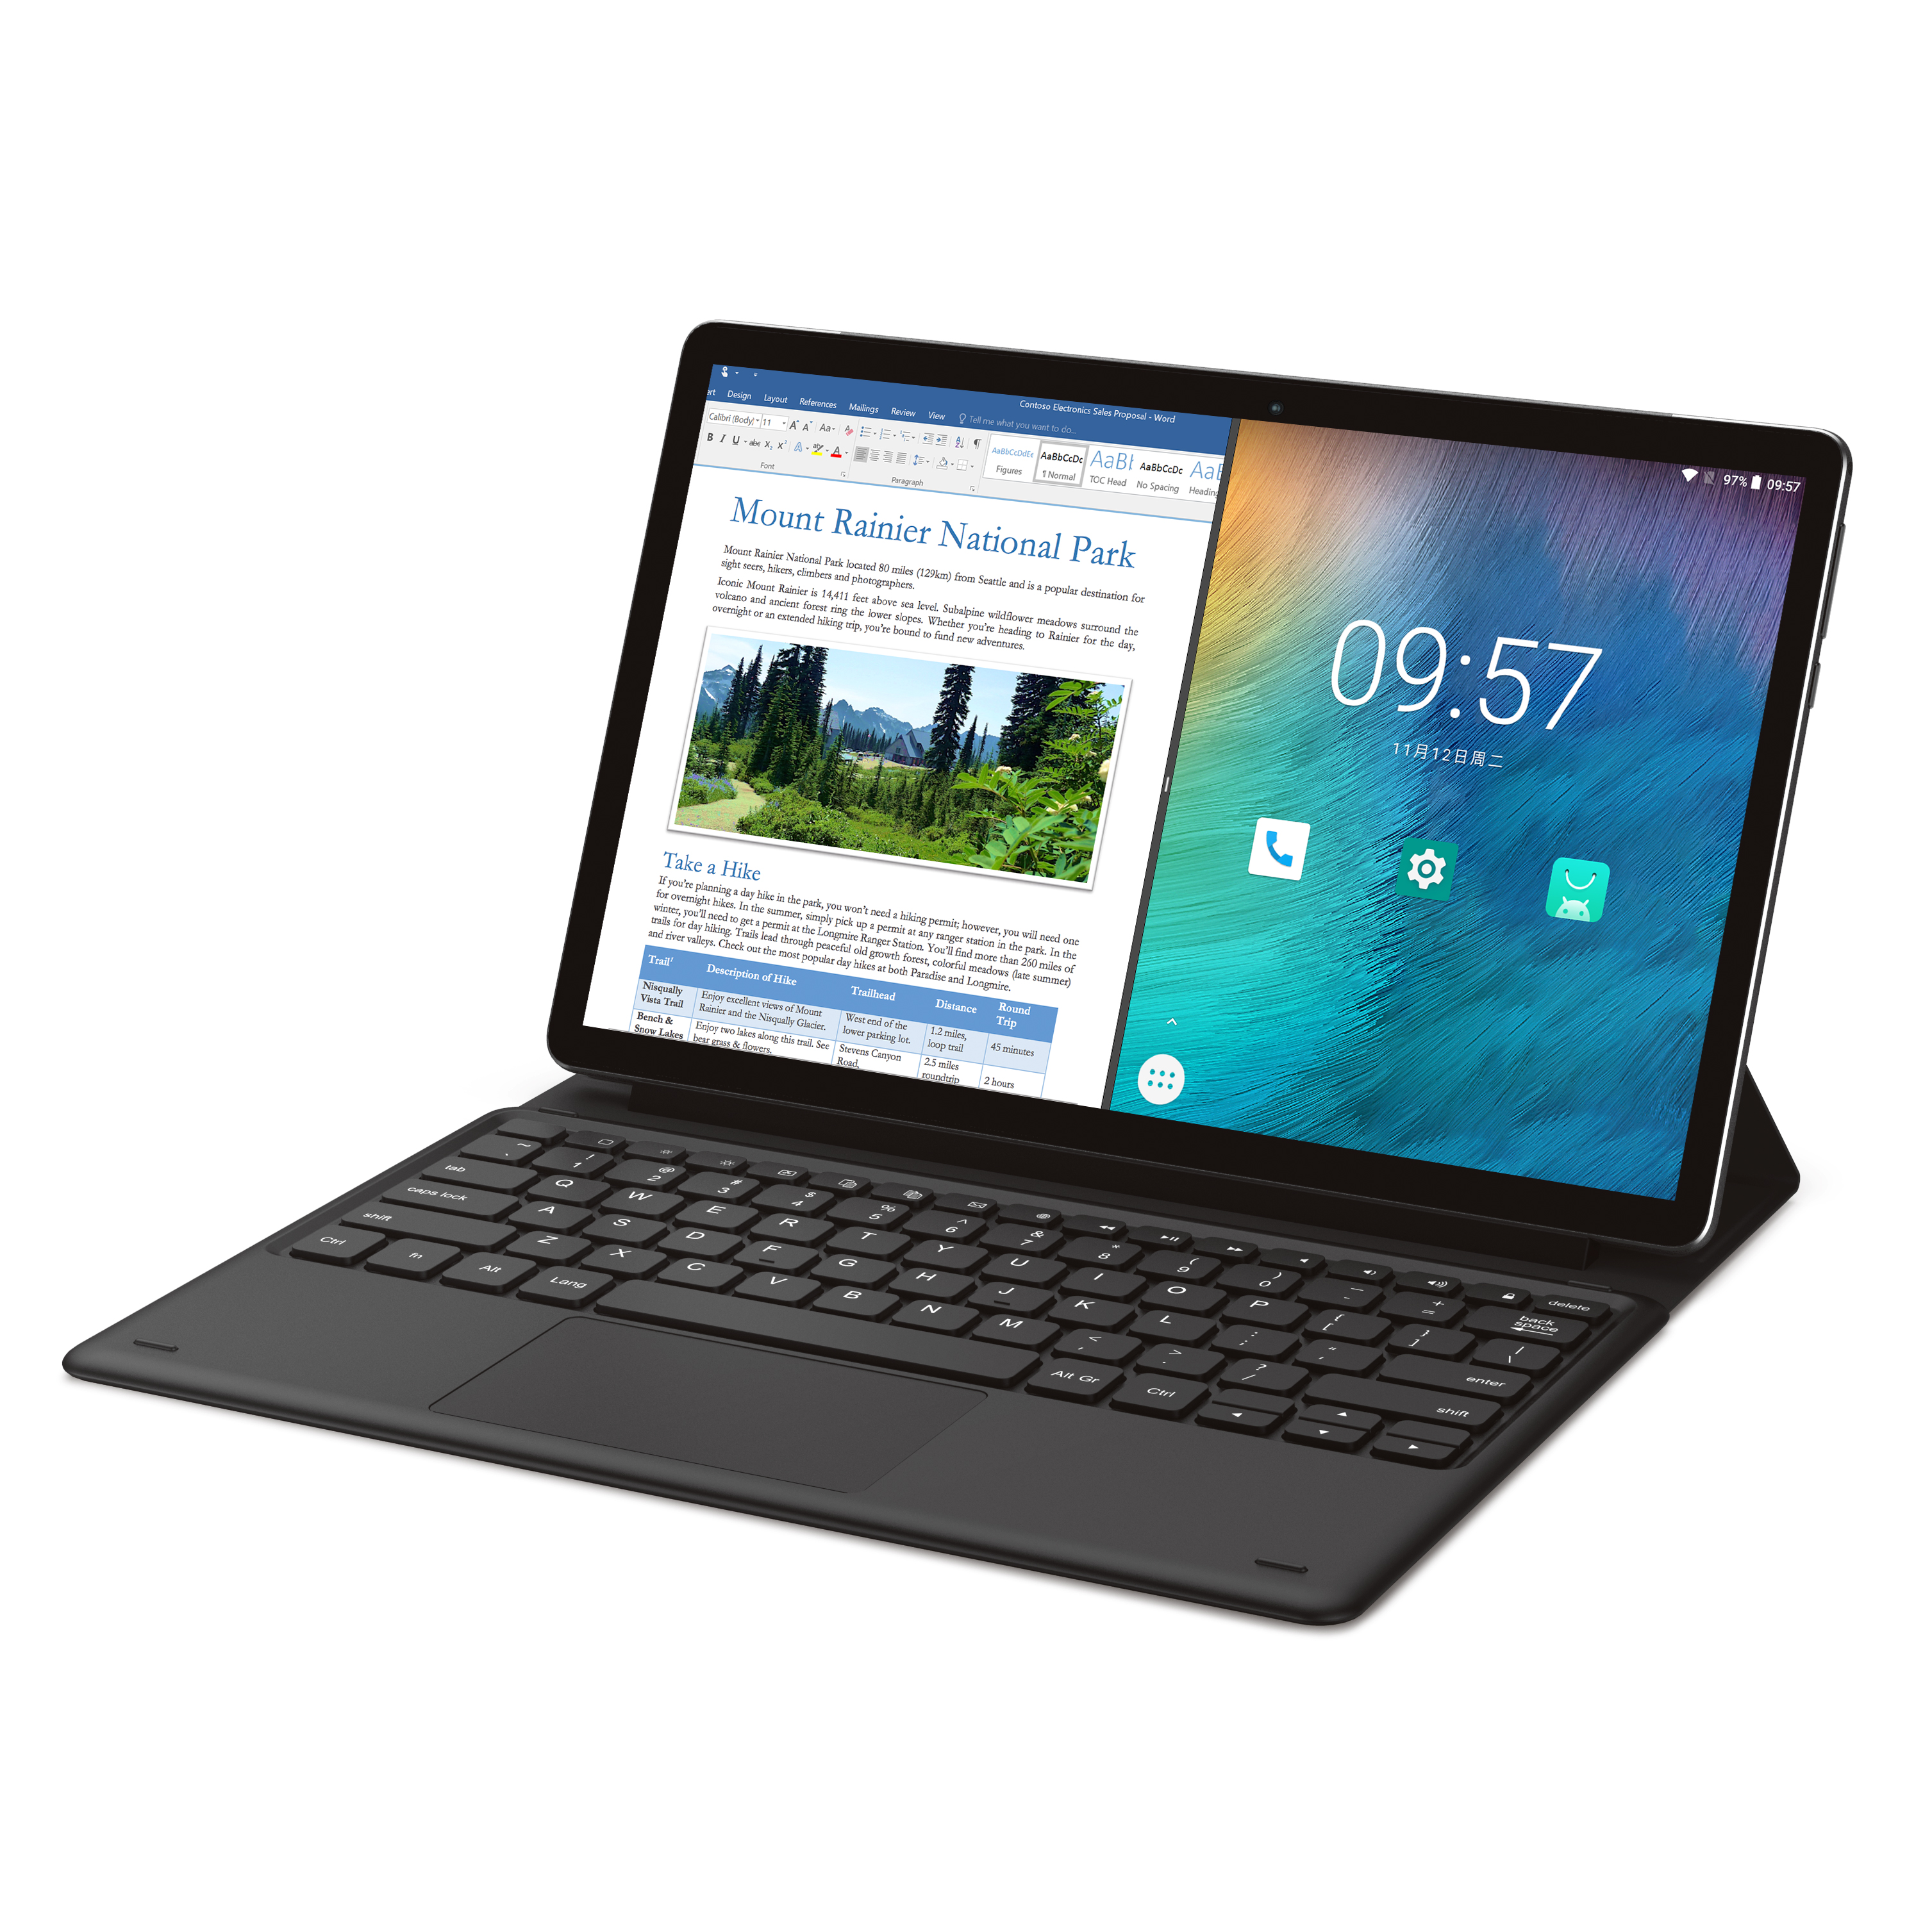 Tablet Teclast M16 11.6 cala 4G Phablet MT6797 ( X27 ) Android 8.0 1920*1080 2.6GHz Decore CPU 4GB 128GB 8.0MP + 2.0MP podwójny aparatTablety Android   -